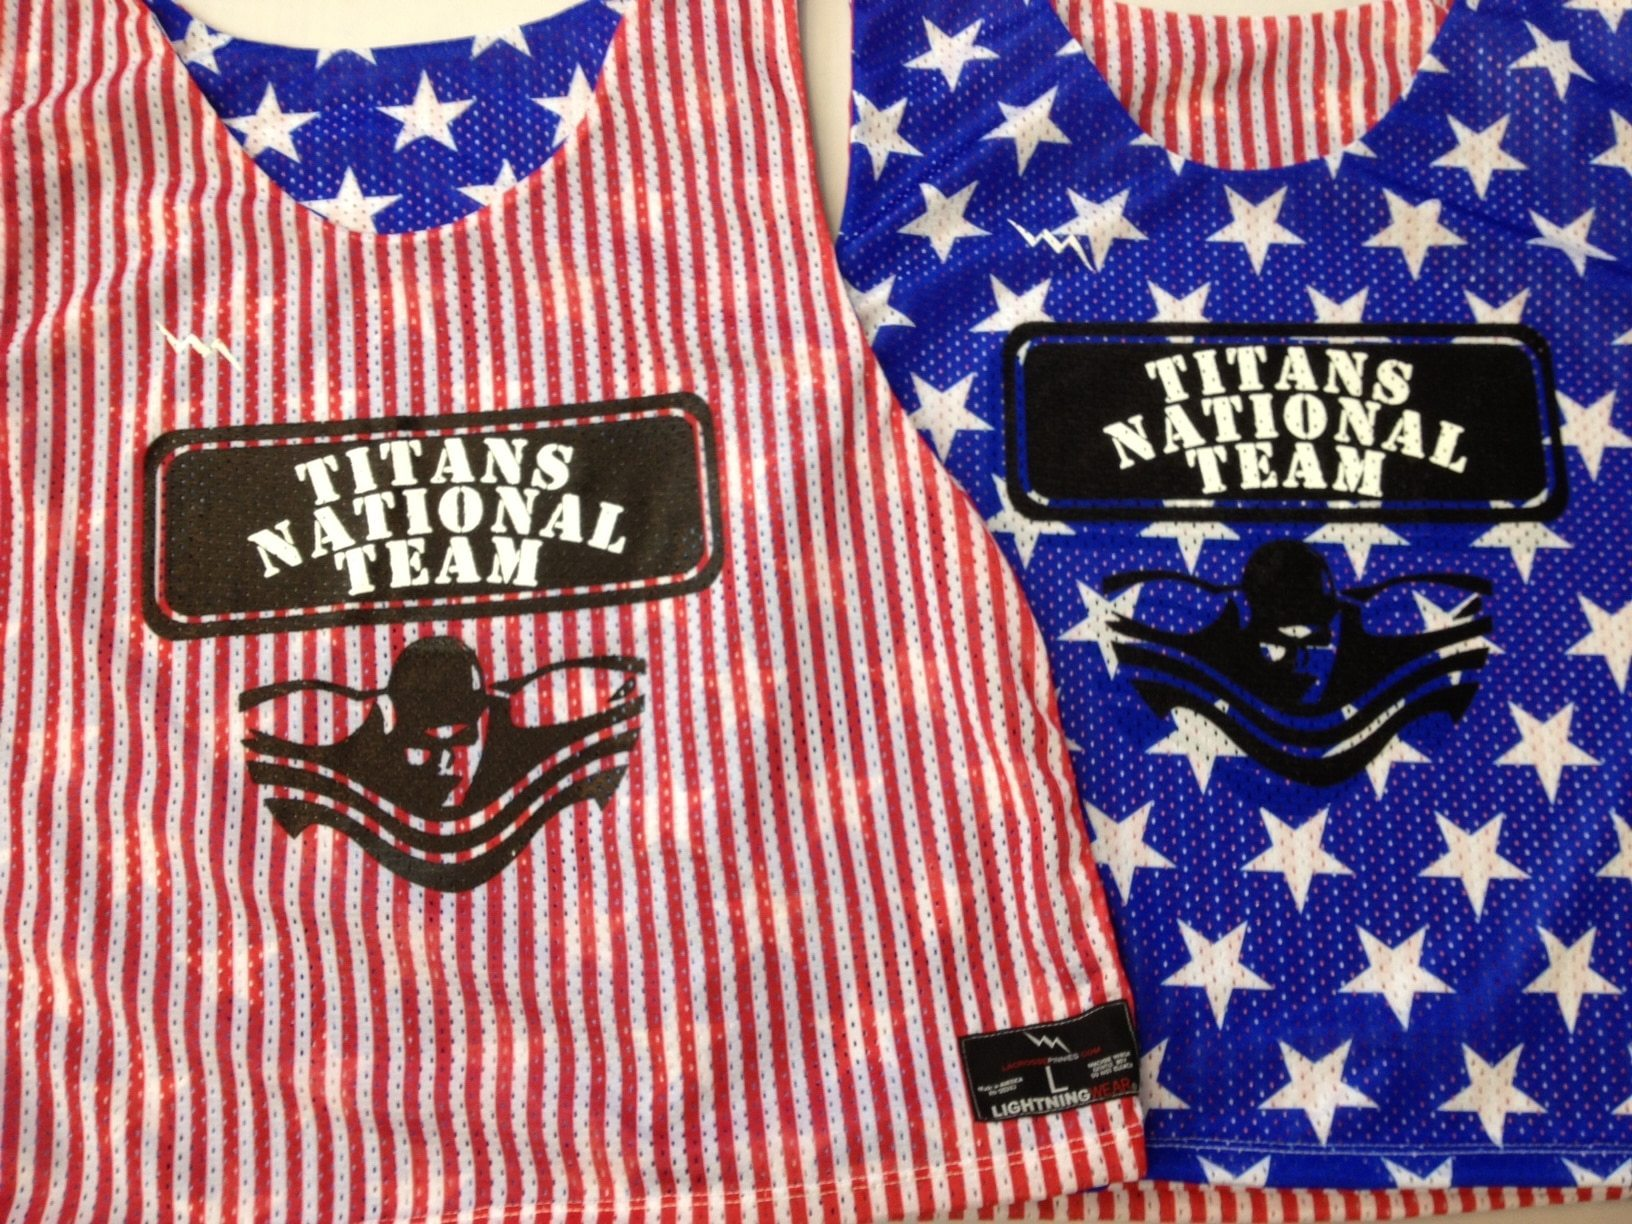 titans nation team pinnies - american flag pinnies